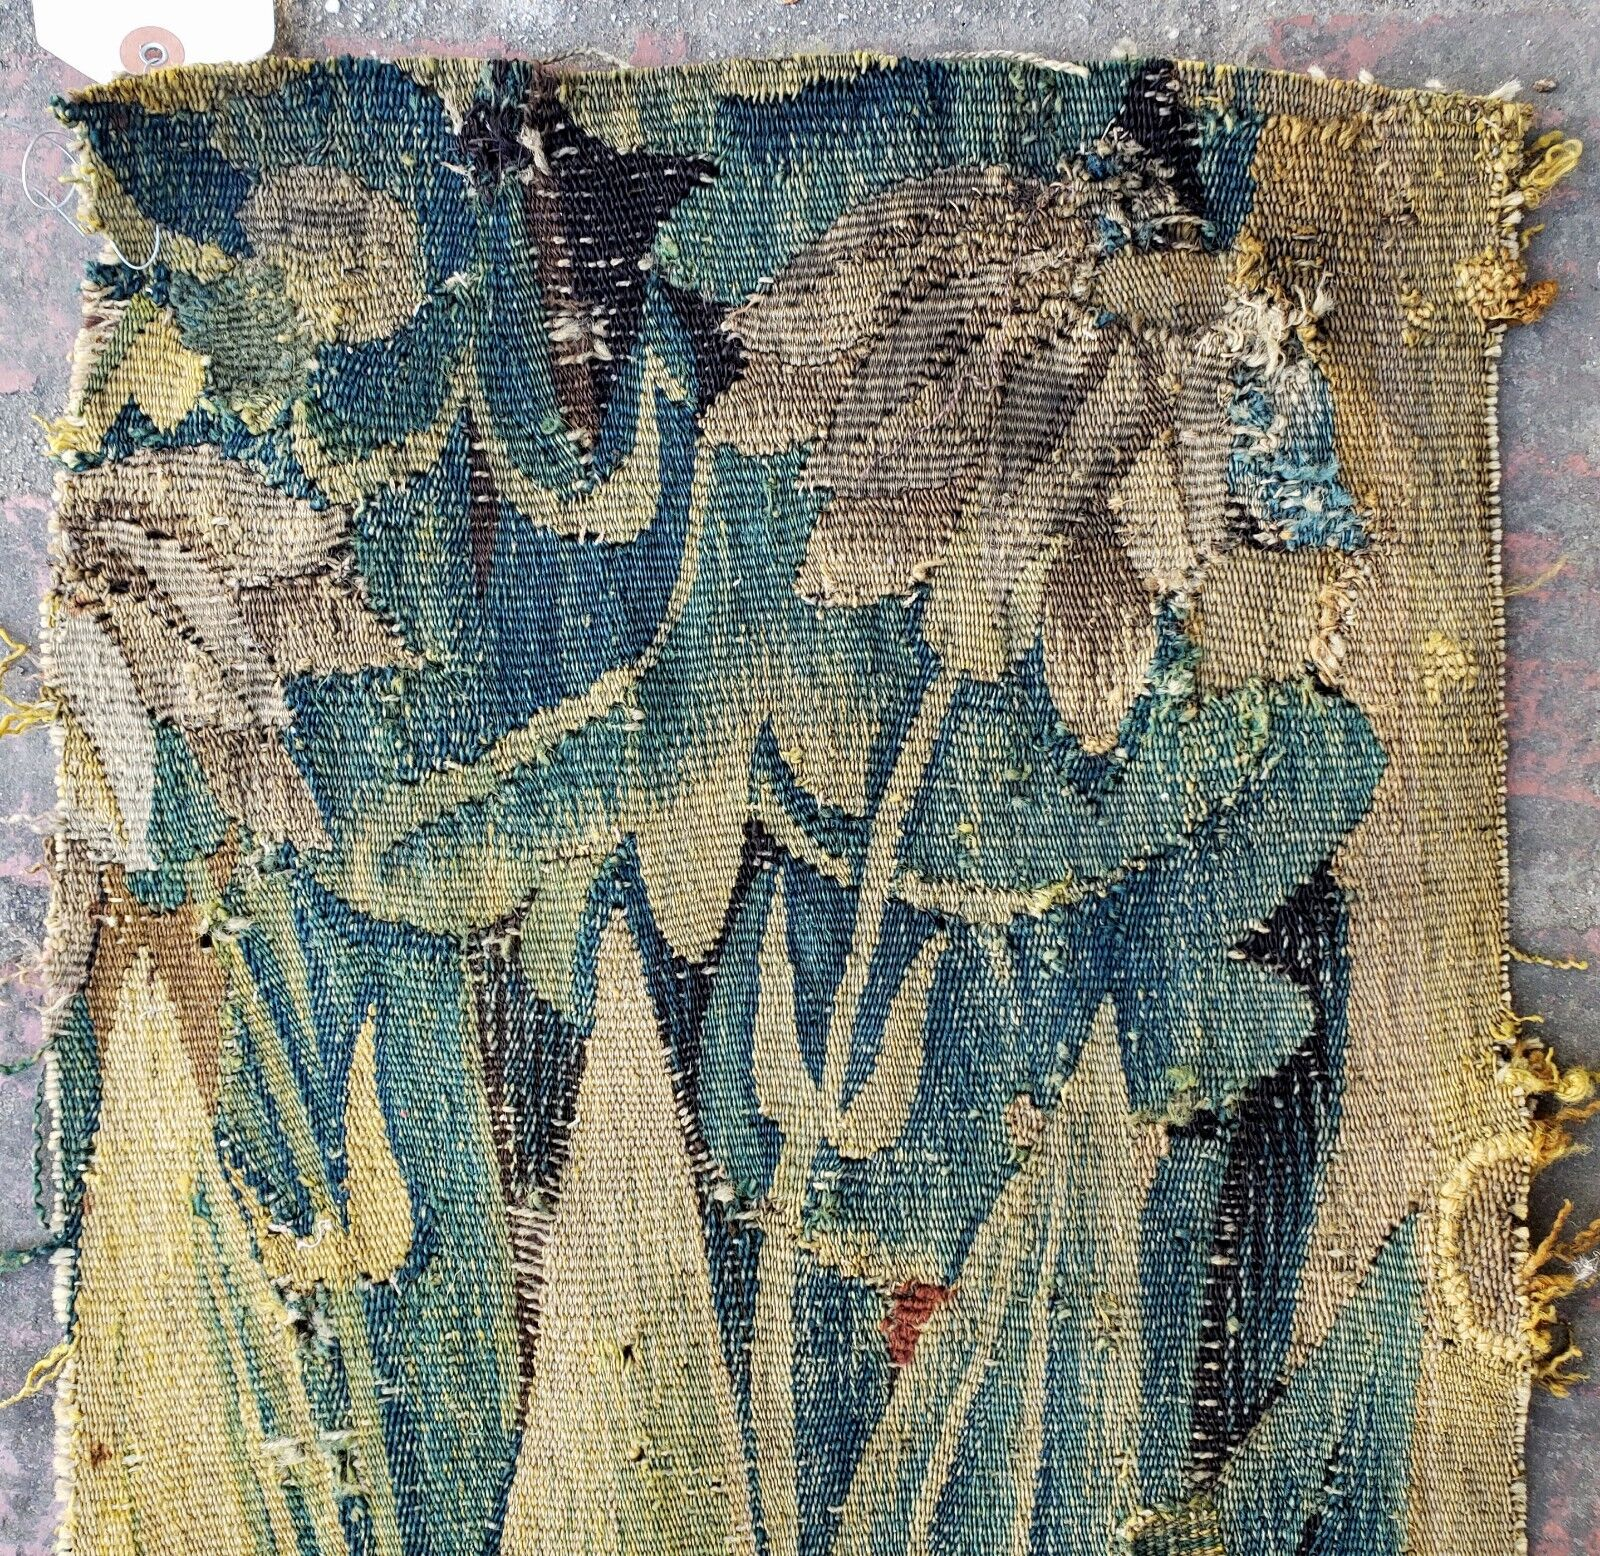 A 17th Century Tapestry Fragment with Plants